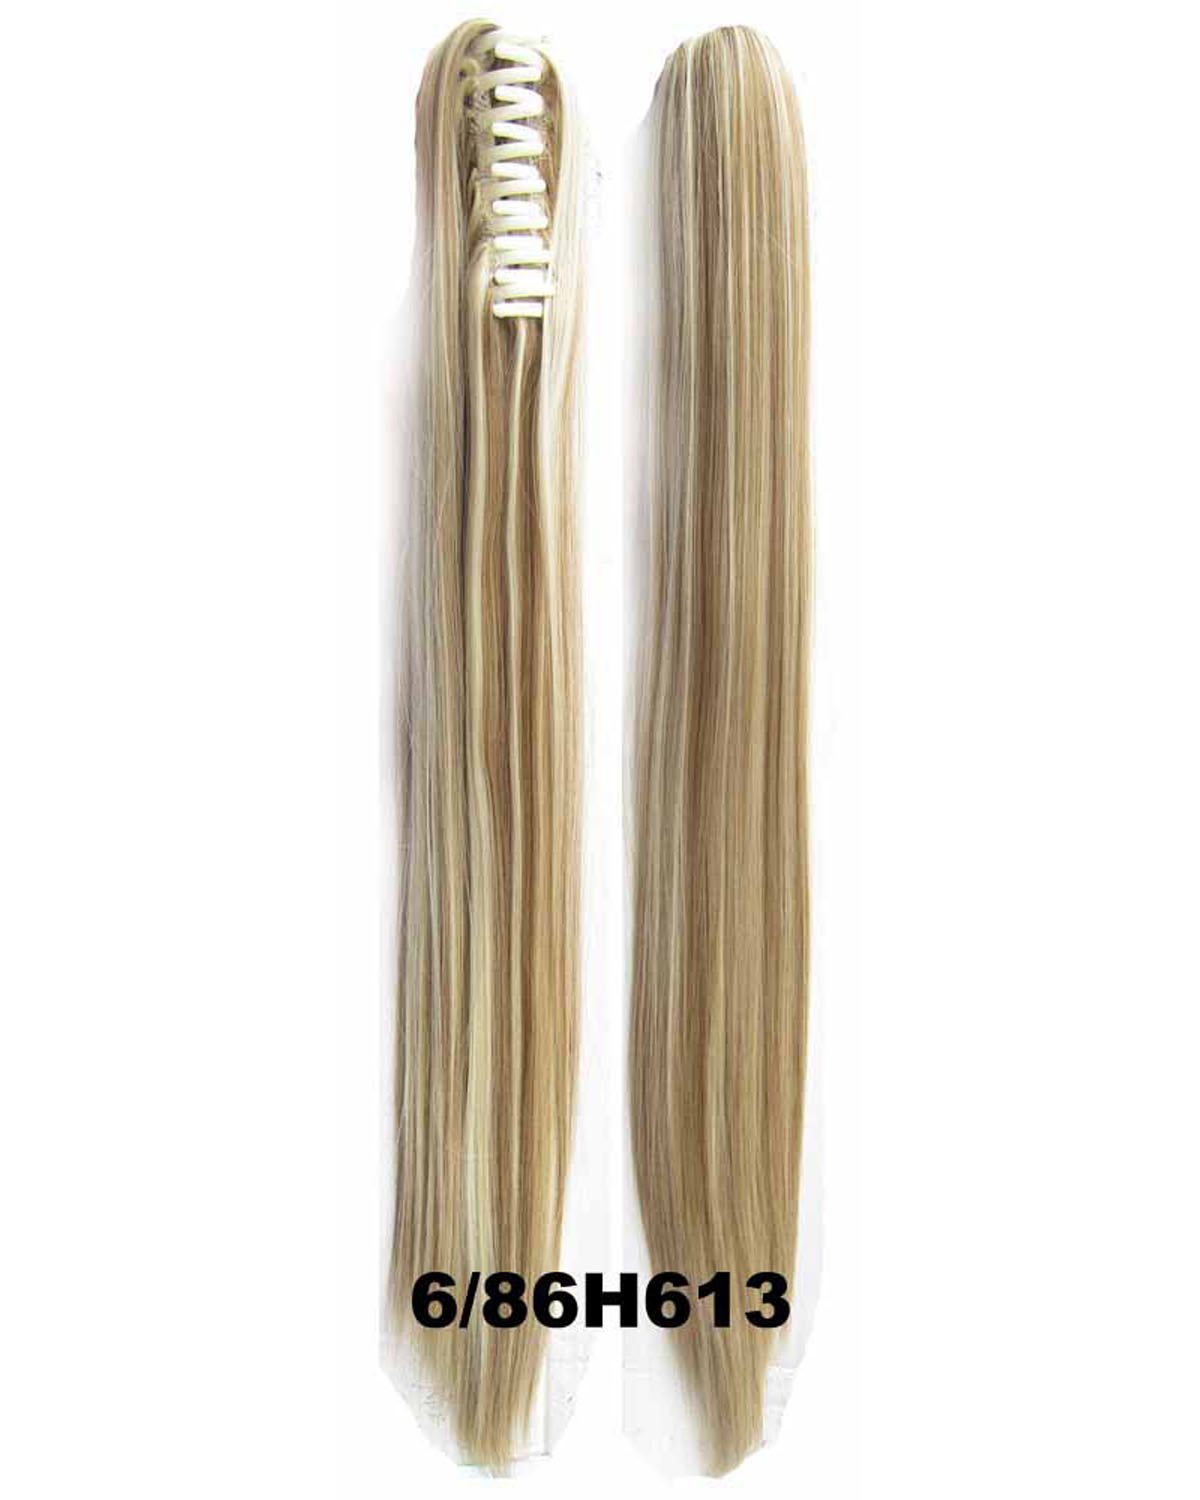 22 Inch Lady Straight and Long Claw Chip Synthetic Hair Ponytail  6/86H613 Shining and Clean